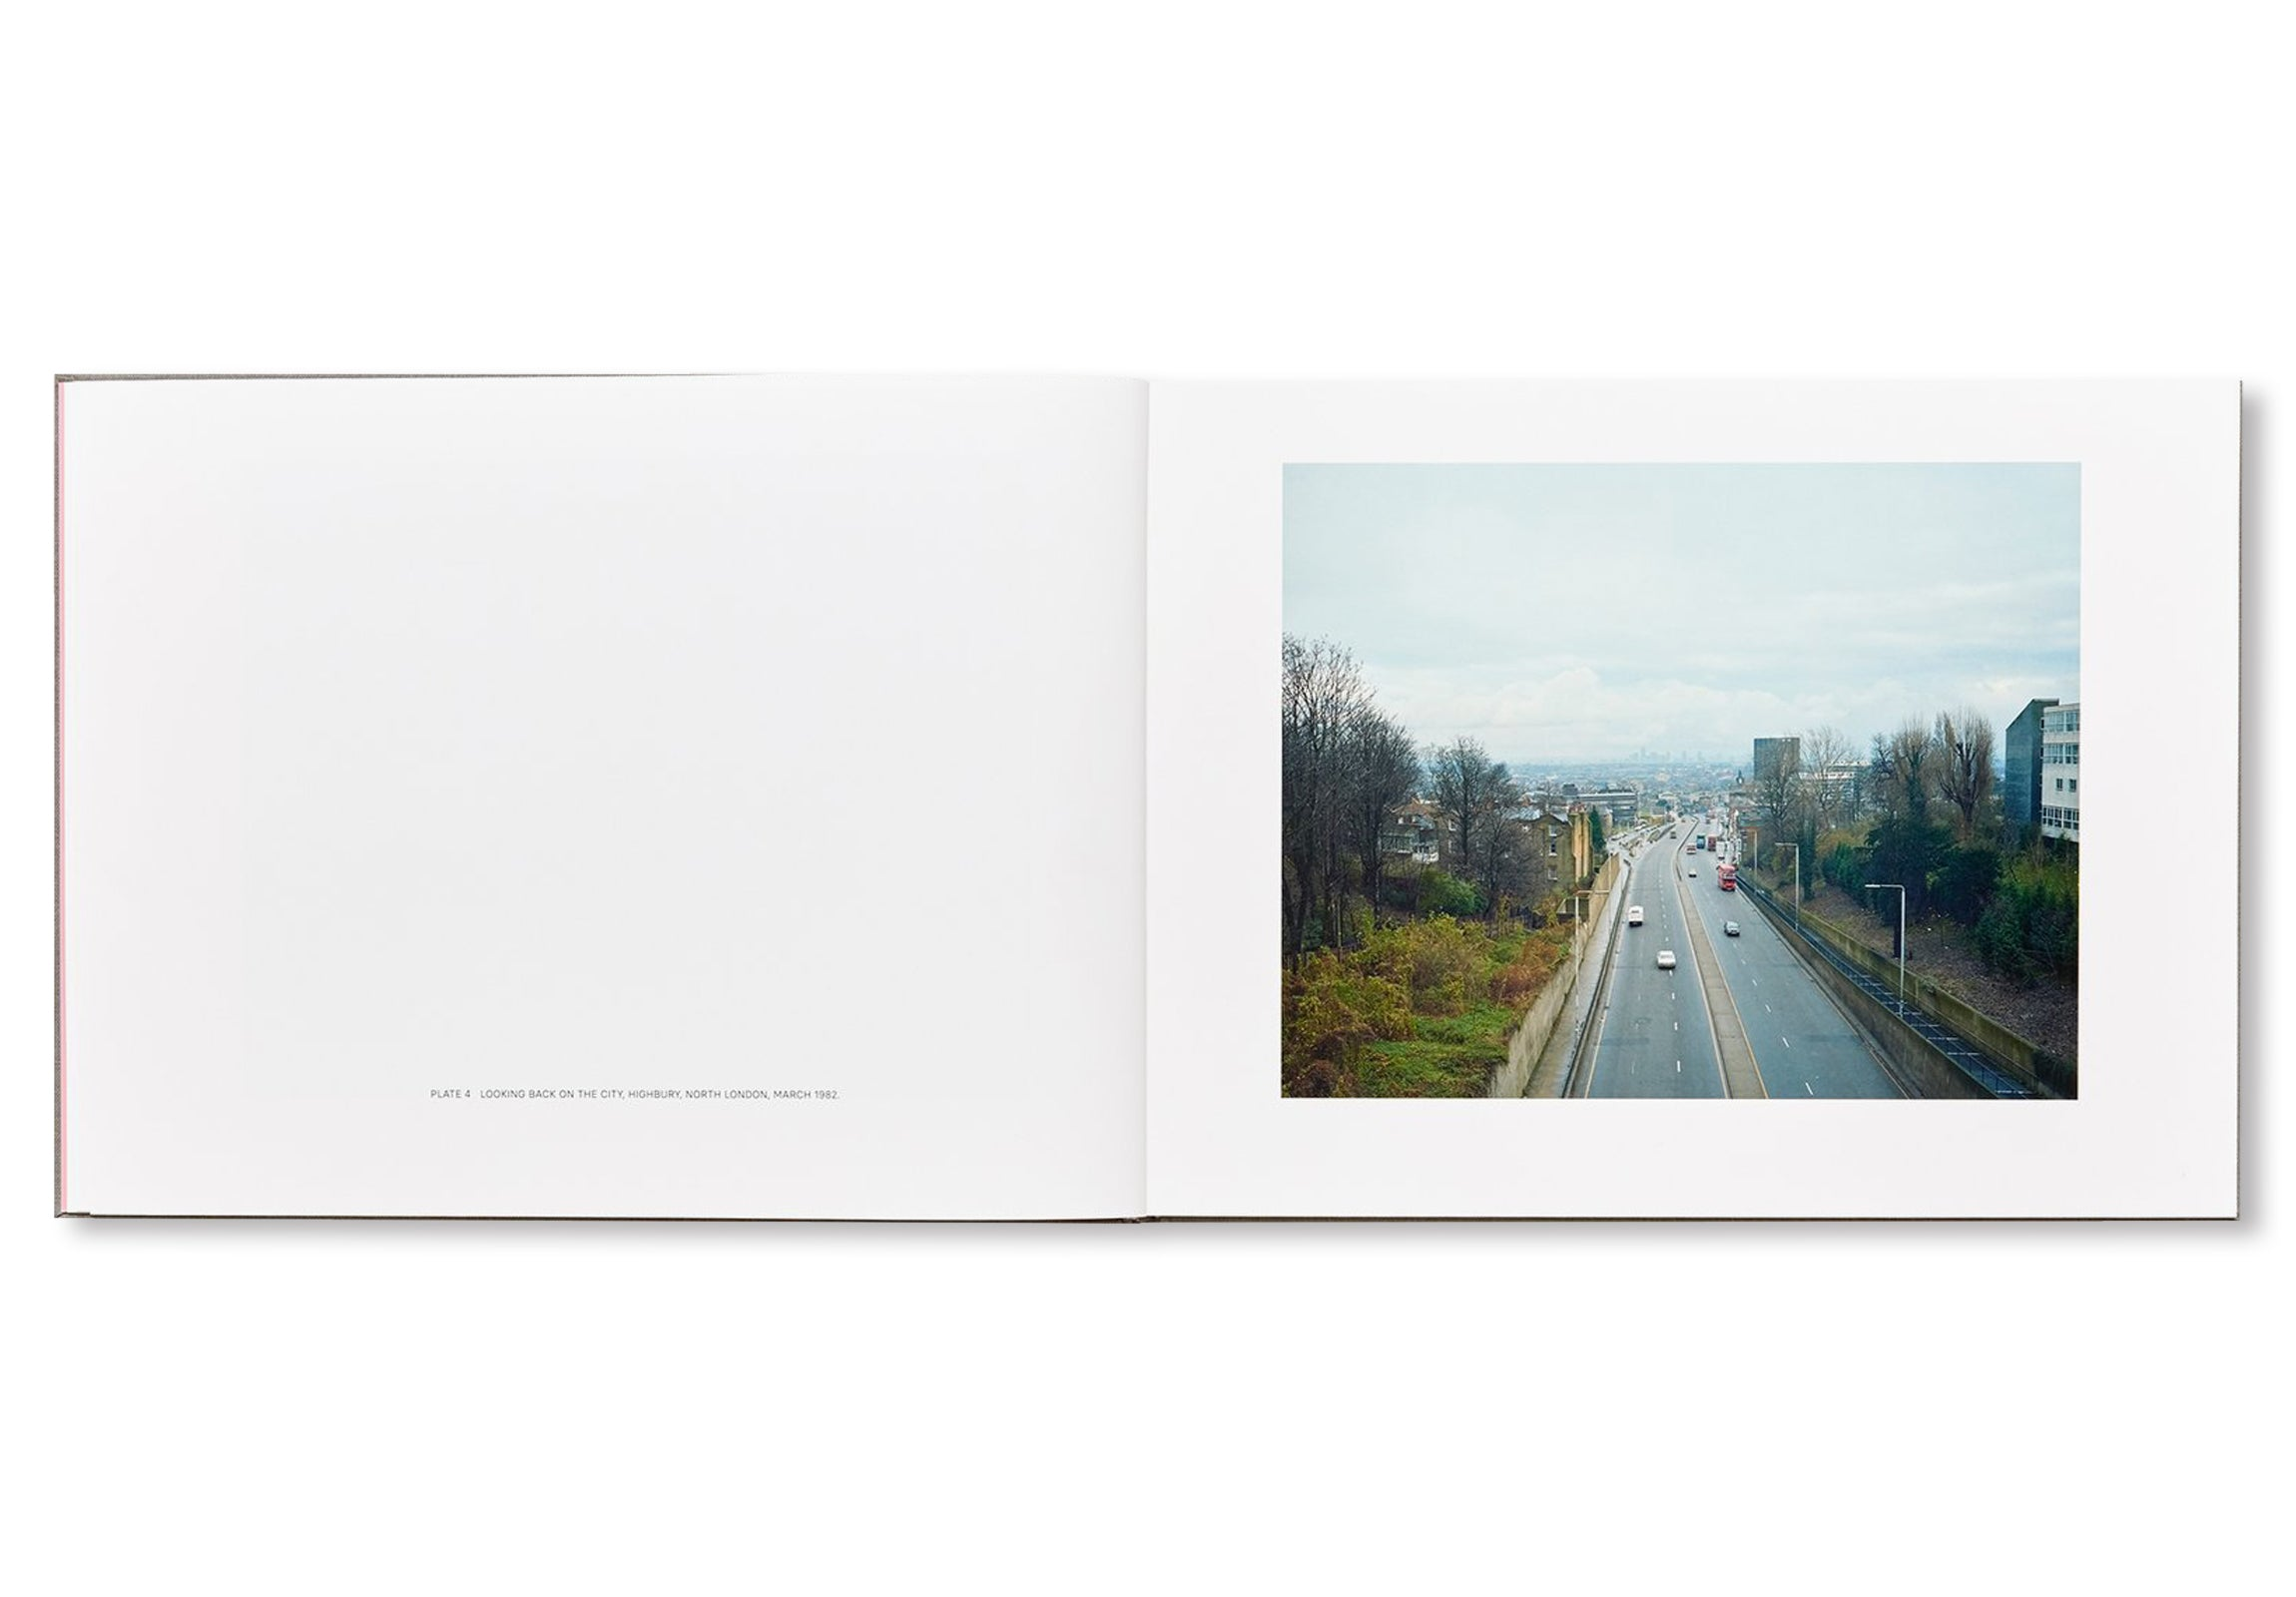 A1 - THE GREAT NORTH ROAD by Paul Graham [FIRST EDITION, SECOND PRINTING]